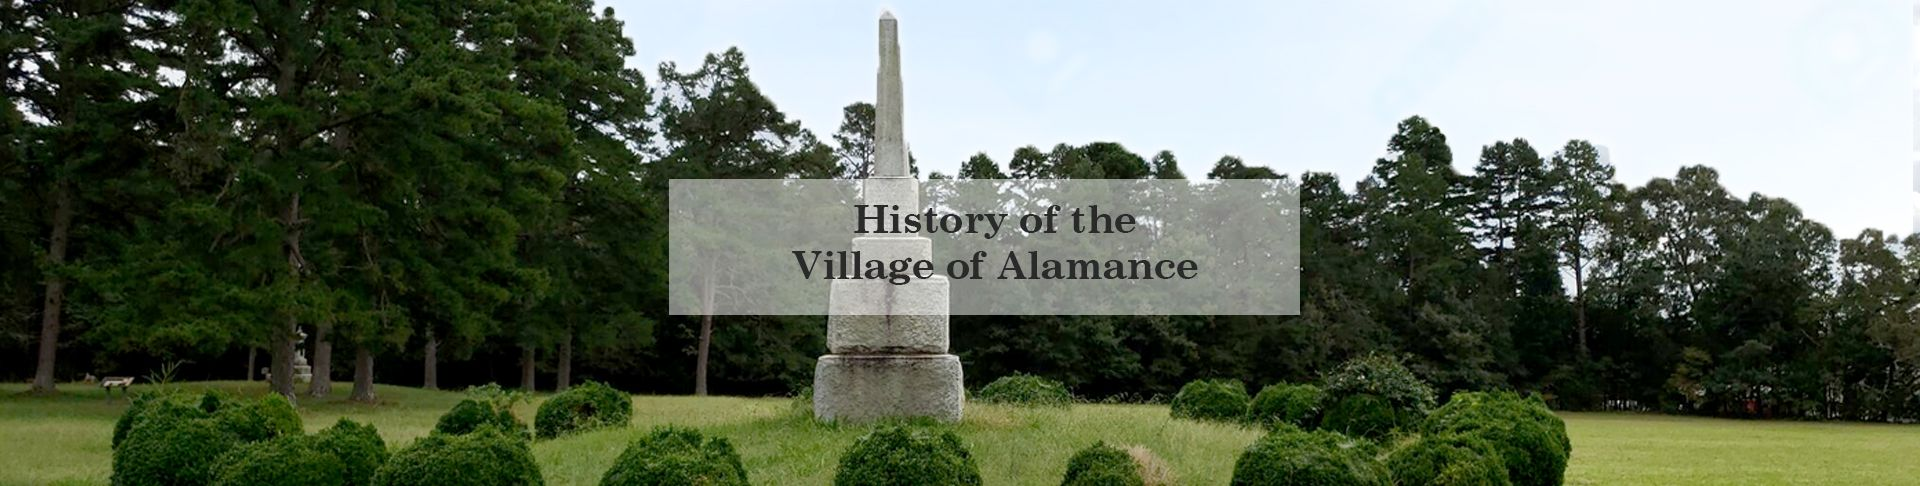 History of the Village of Alamance